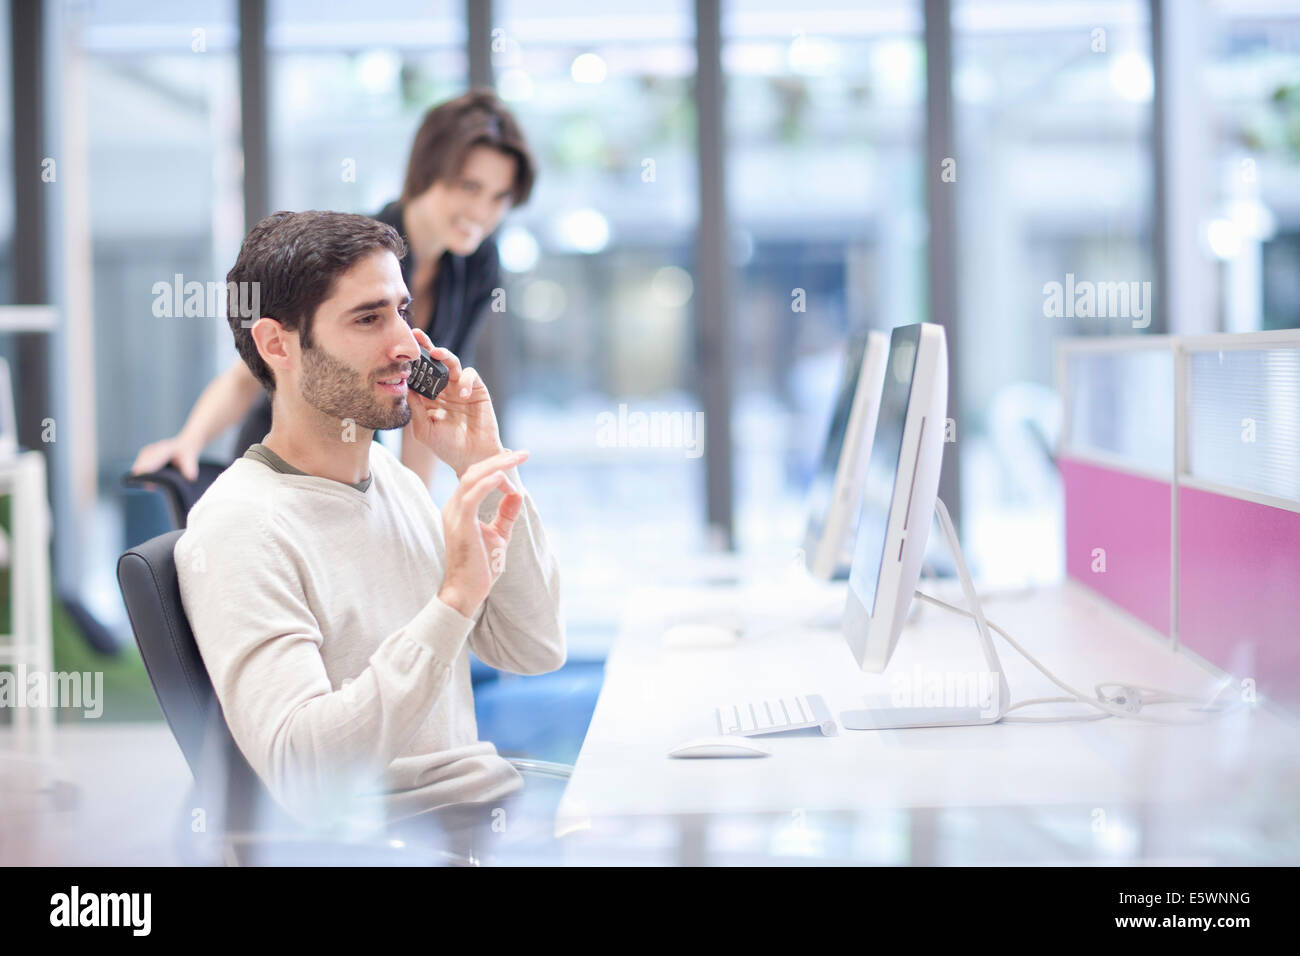 Male office worker on landline phone - Stock Image